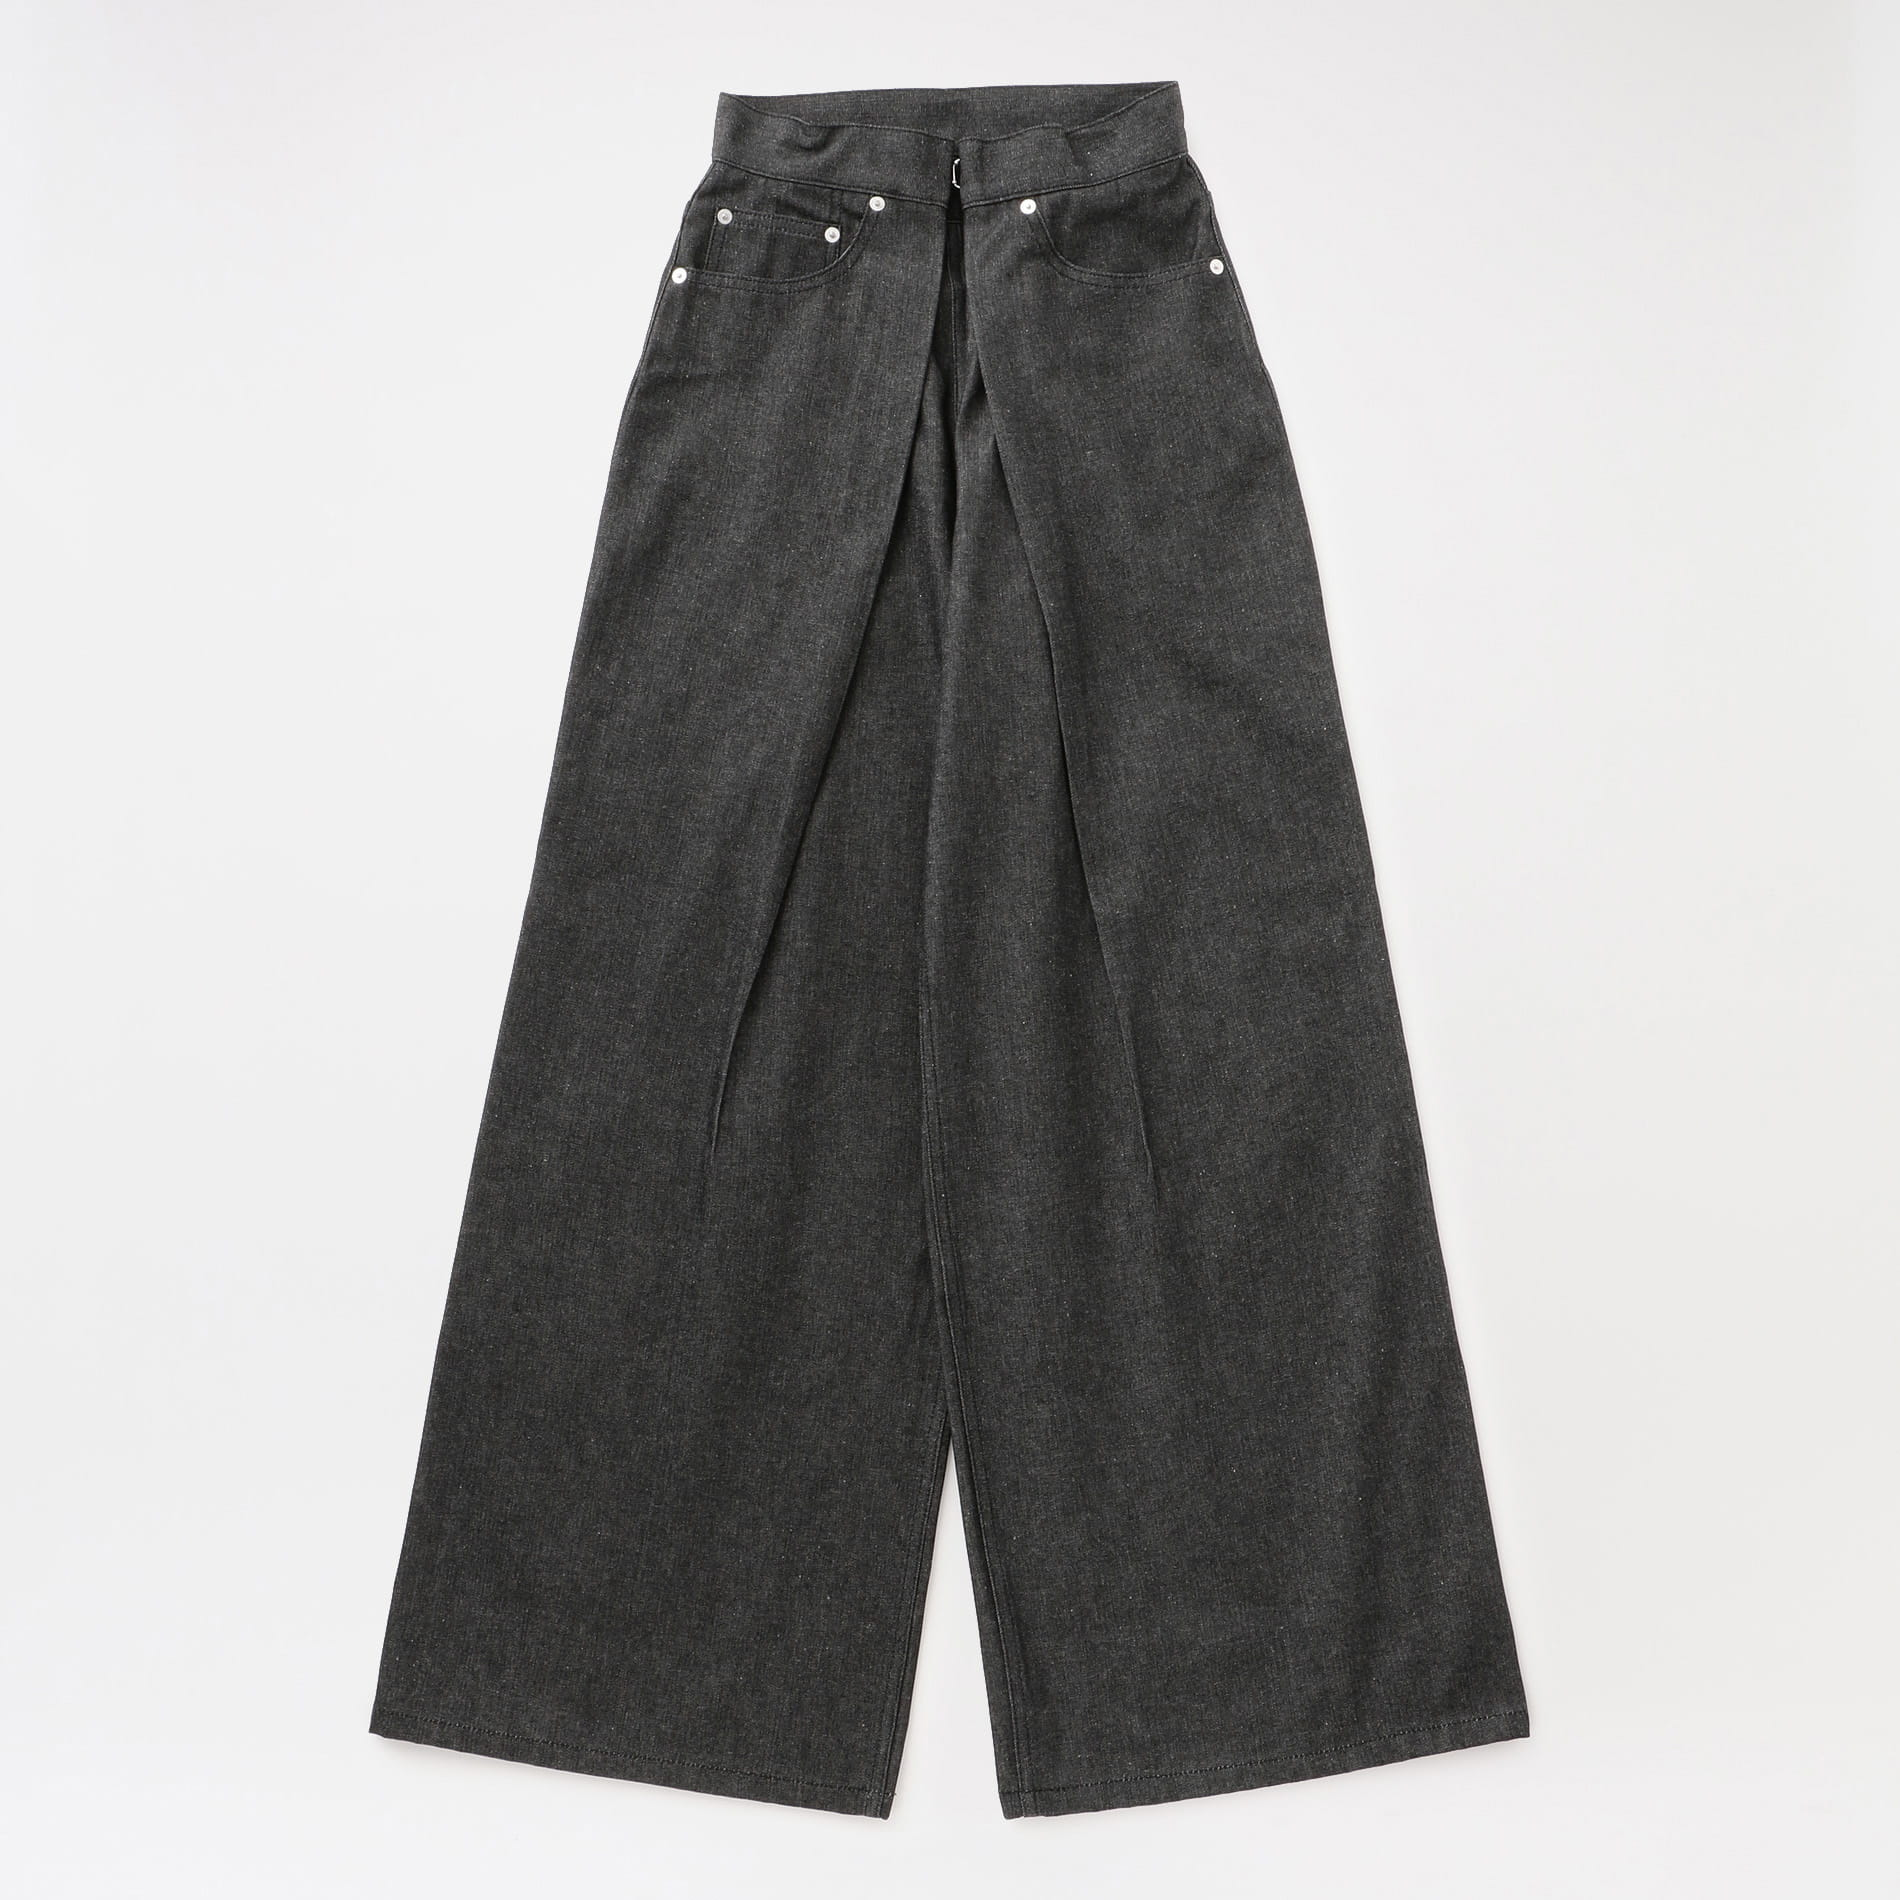 【JOHN LAWRENCE SULLIVAN】WOMEN Rigid Denim Wide Pants JLSW-01-S